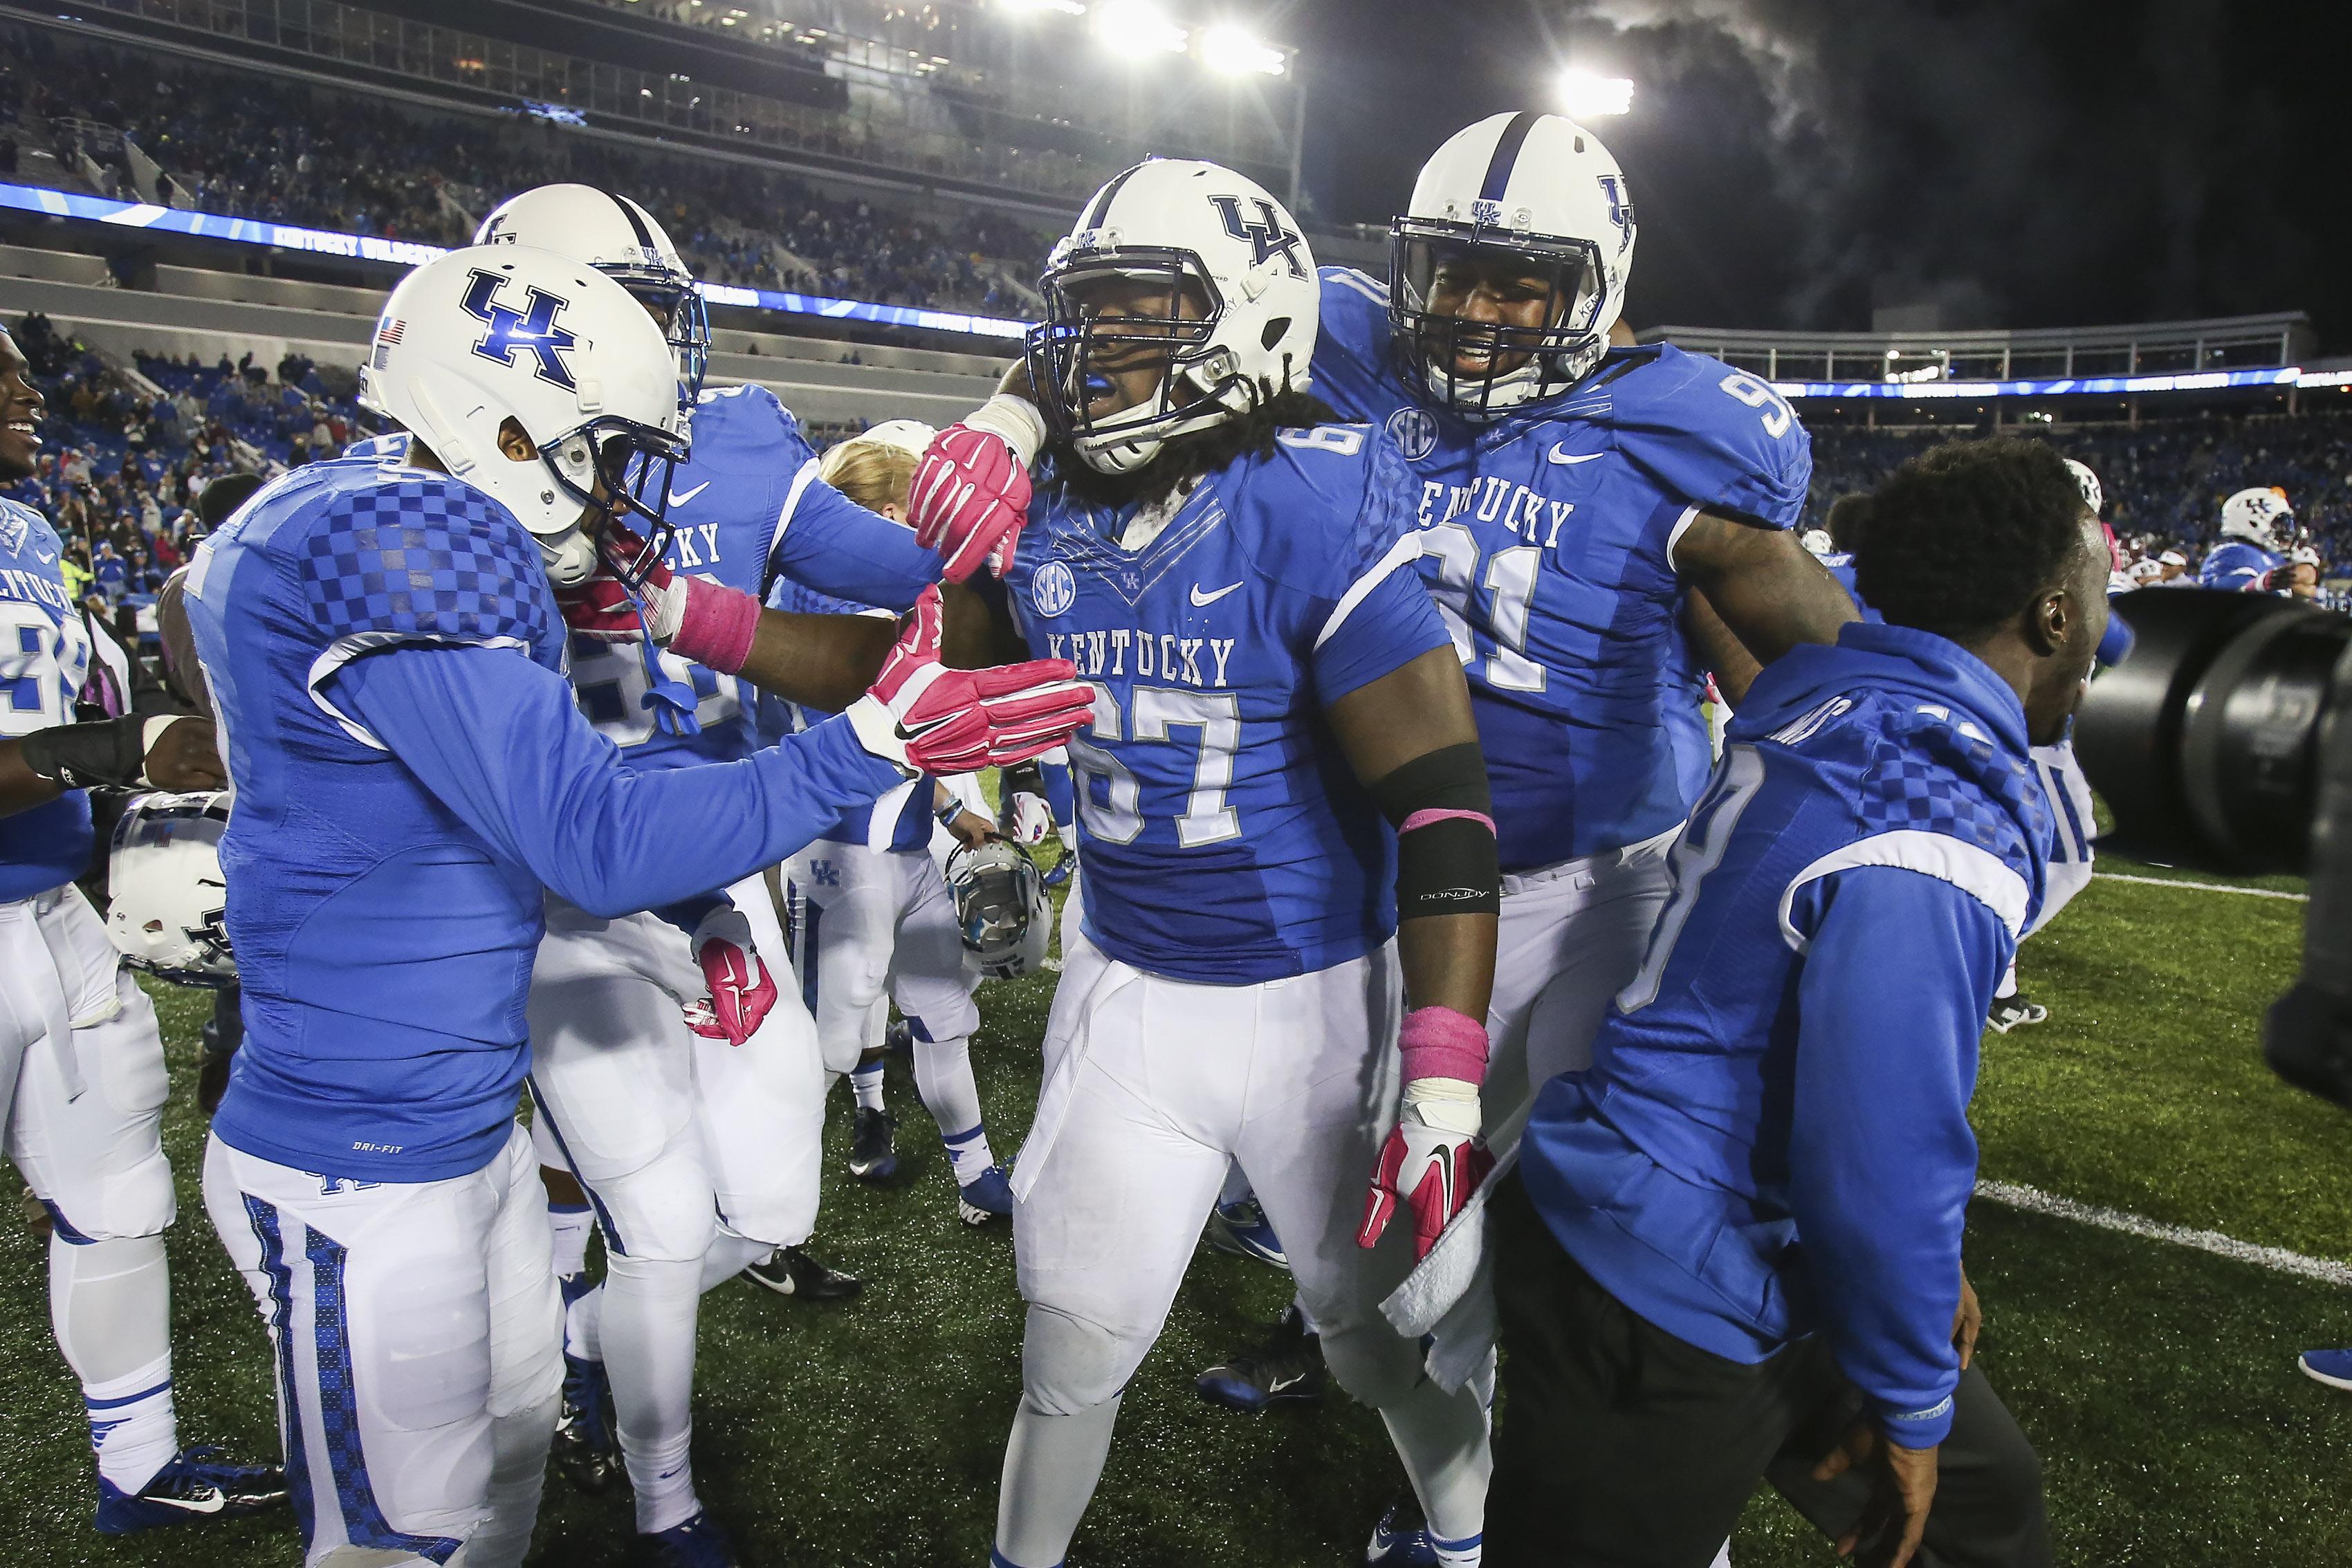 Kentucky cornerback Kendall Randolph, left, defensive tackle Cory Johnson, center, and defensive end Farrington Huguenin celebrate after defeating Eastern Kentucky in overtime during an NCAA college football game Saturday, Oct. 3, 2015, in Lexington, Ky.